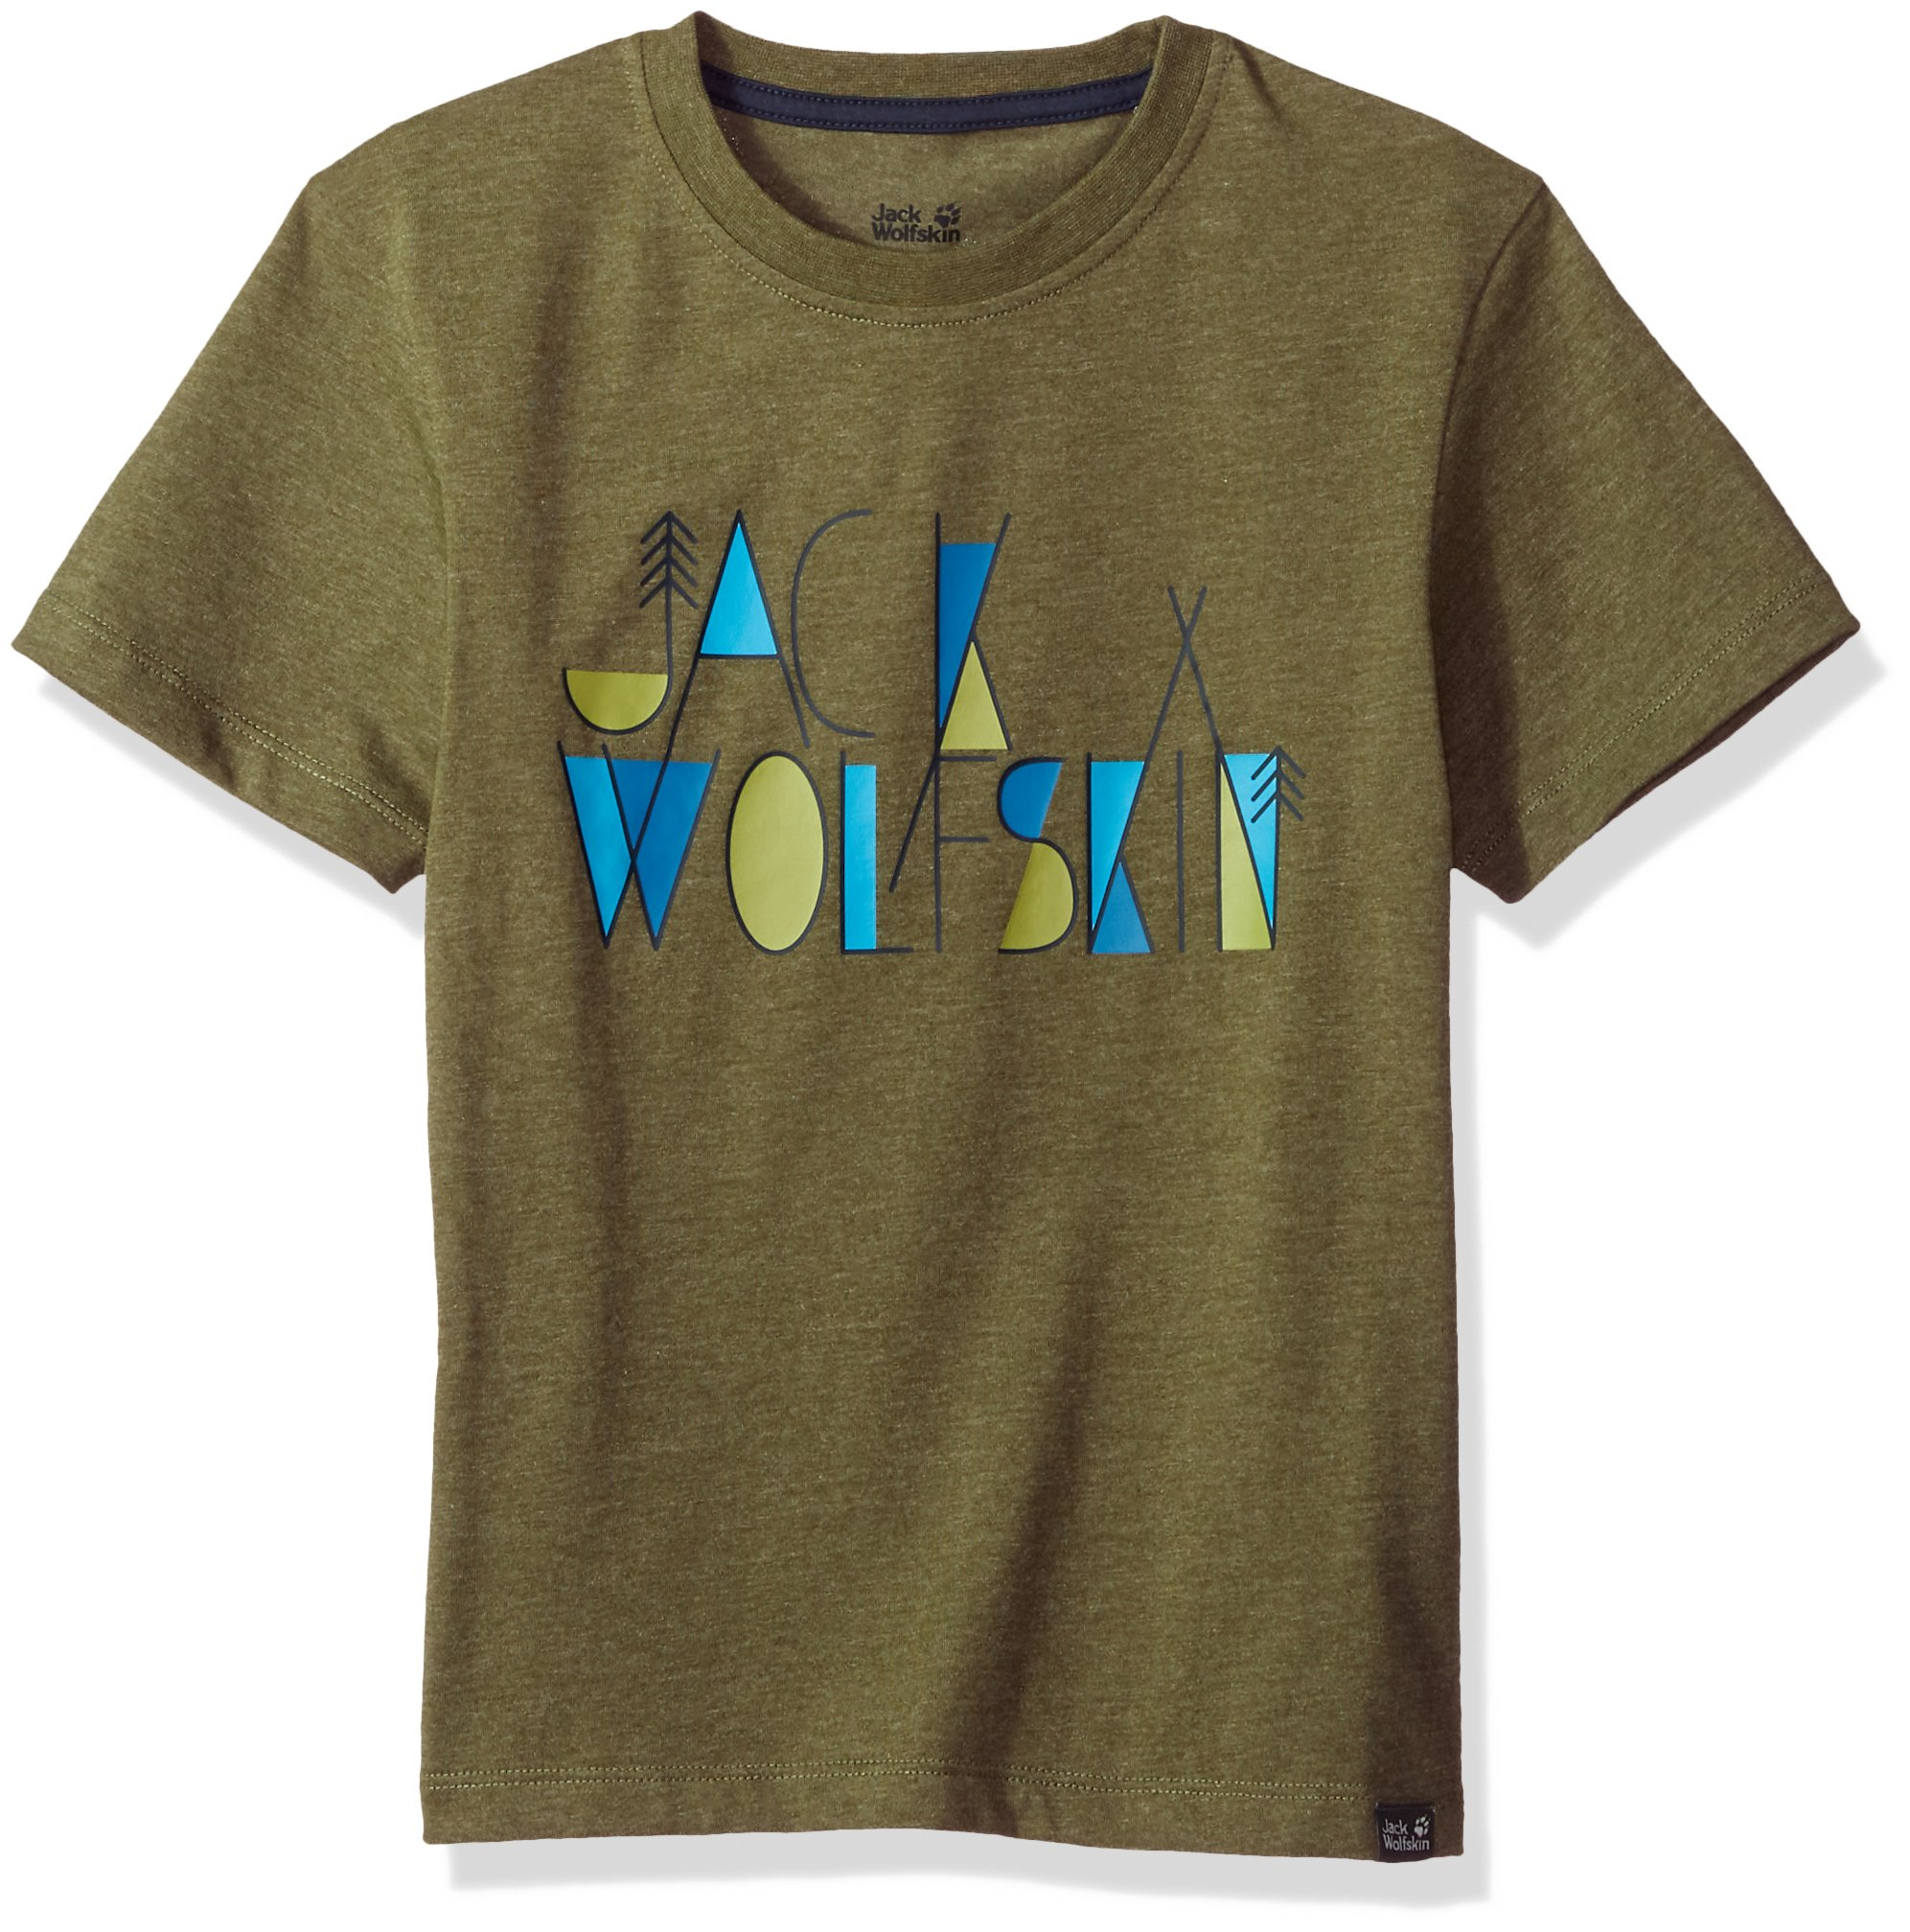 Jack Wolfskin Boy's Brand T T-Shirt Short Sleeve, 152 (11-12 Years Old), Woodland Green by Jack Wolfskin